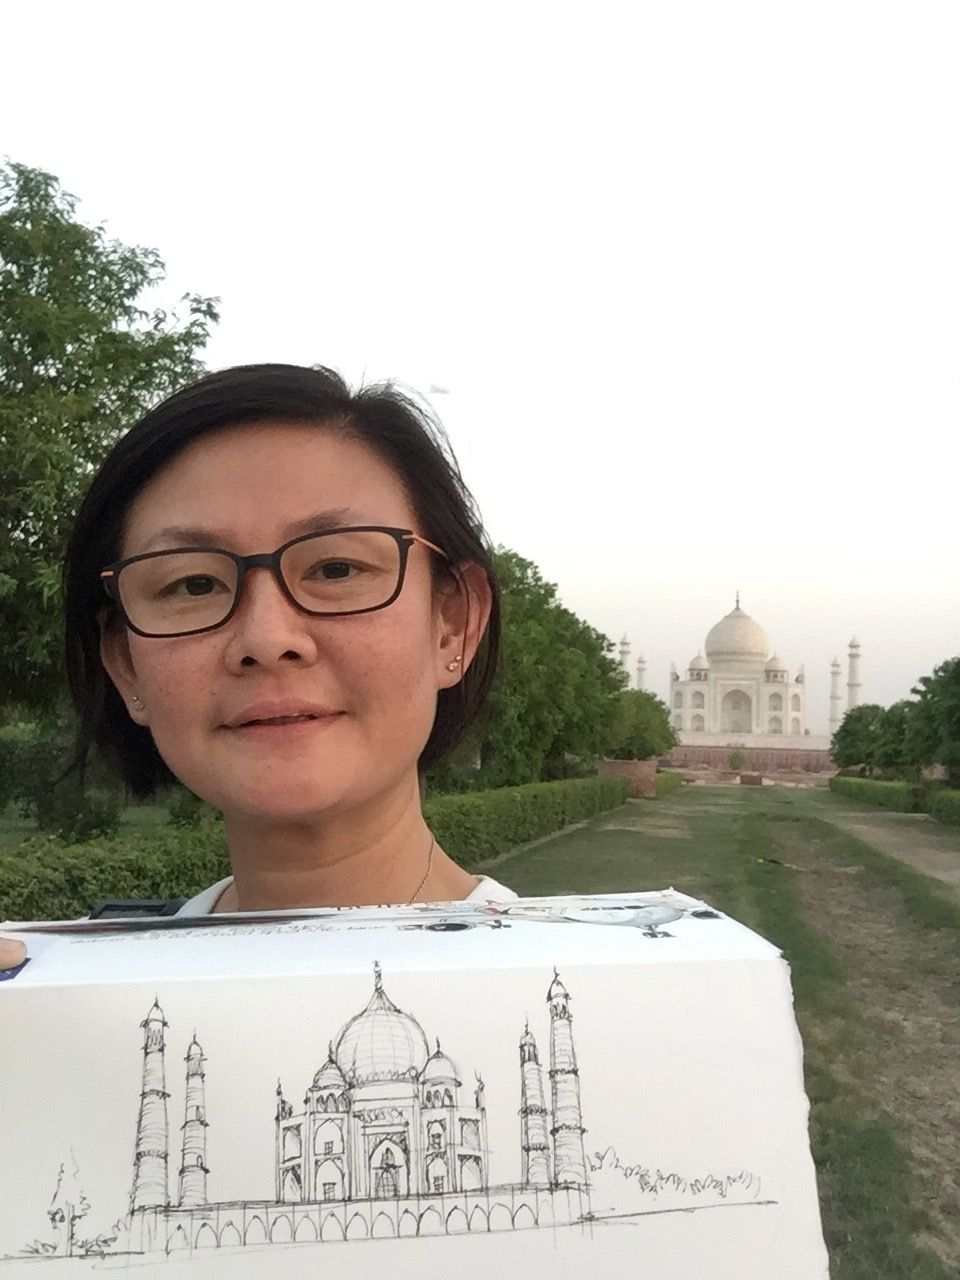 Teo-Simpson and her sketch of the Taj Mahal in Agra, India.